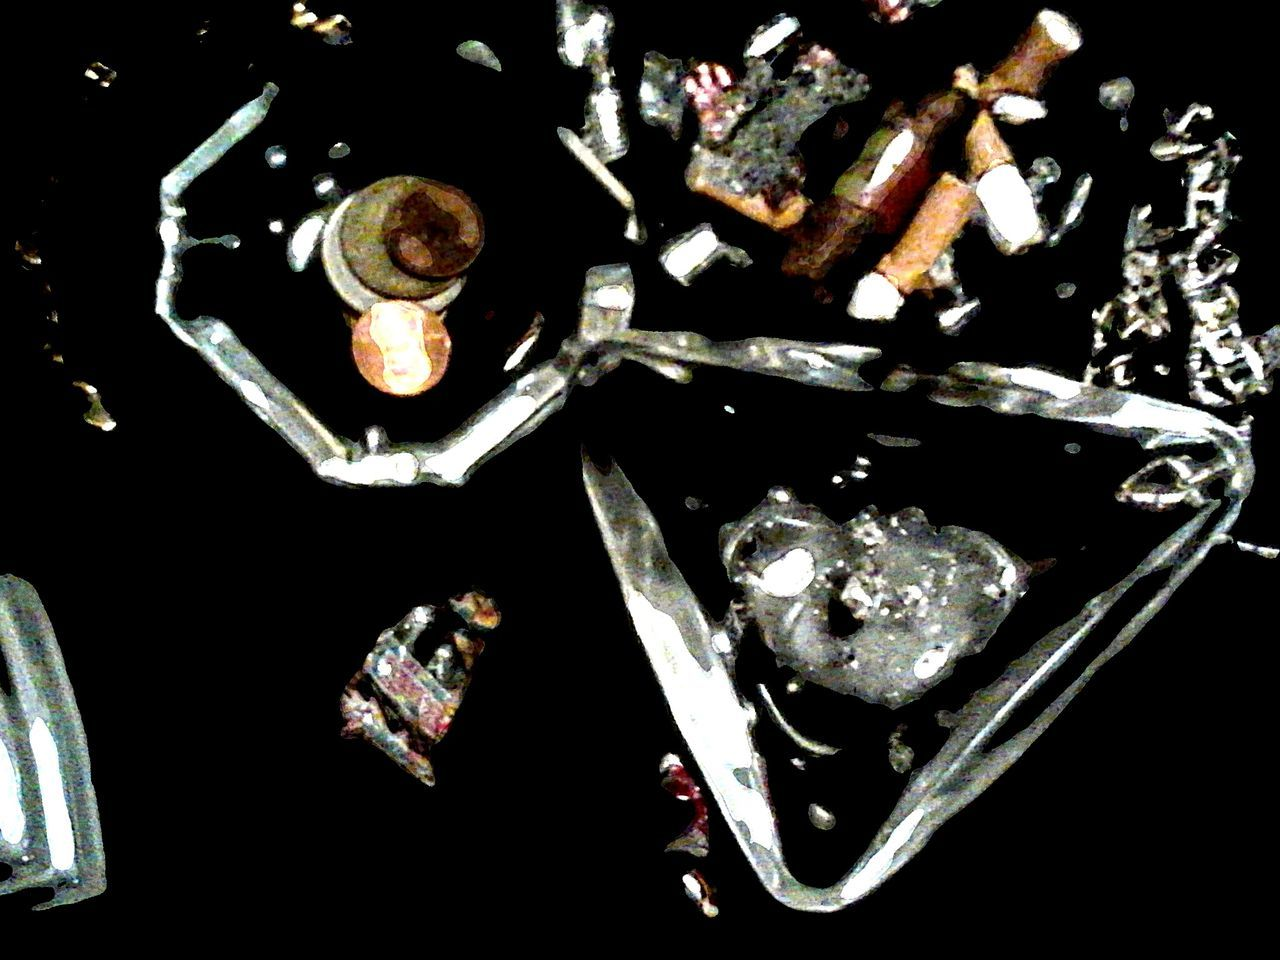 Titled: THE MA|D CAME TOO DAMNED EARLY. Detail Abstract Abstract Photography Abstract Art Abstractart Abstractions Abstractporn Abstraction Abstractphotography Miscellaneous  Everyday Objects Everyday Things Things Garbage Cleaning Cleaning Up! Cleaning Up The Mess After The Party After The Party After The Party . After The Party . Ashtrays Ashtray  Trash Trashed